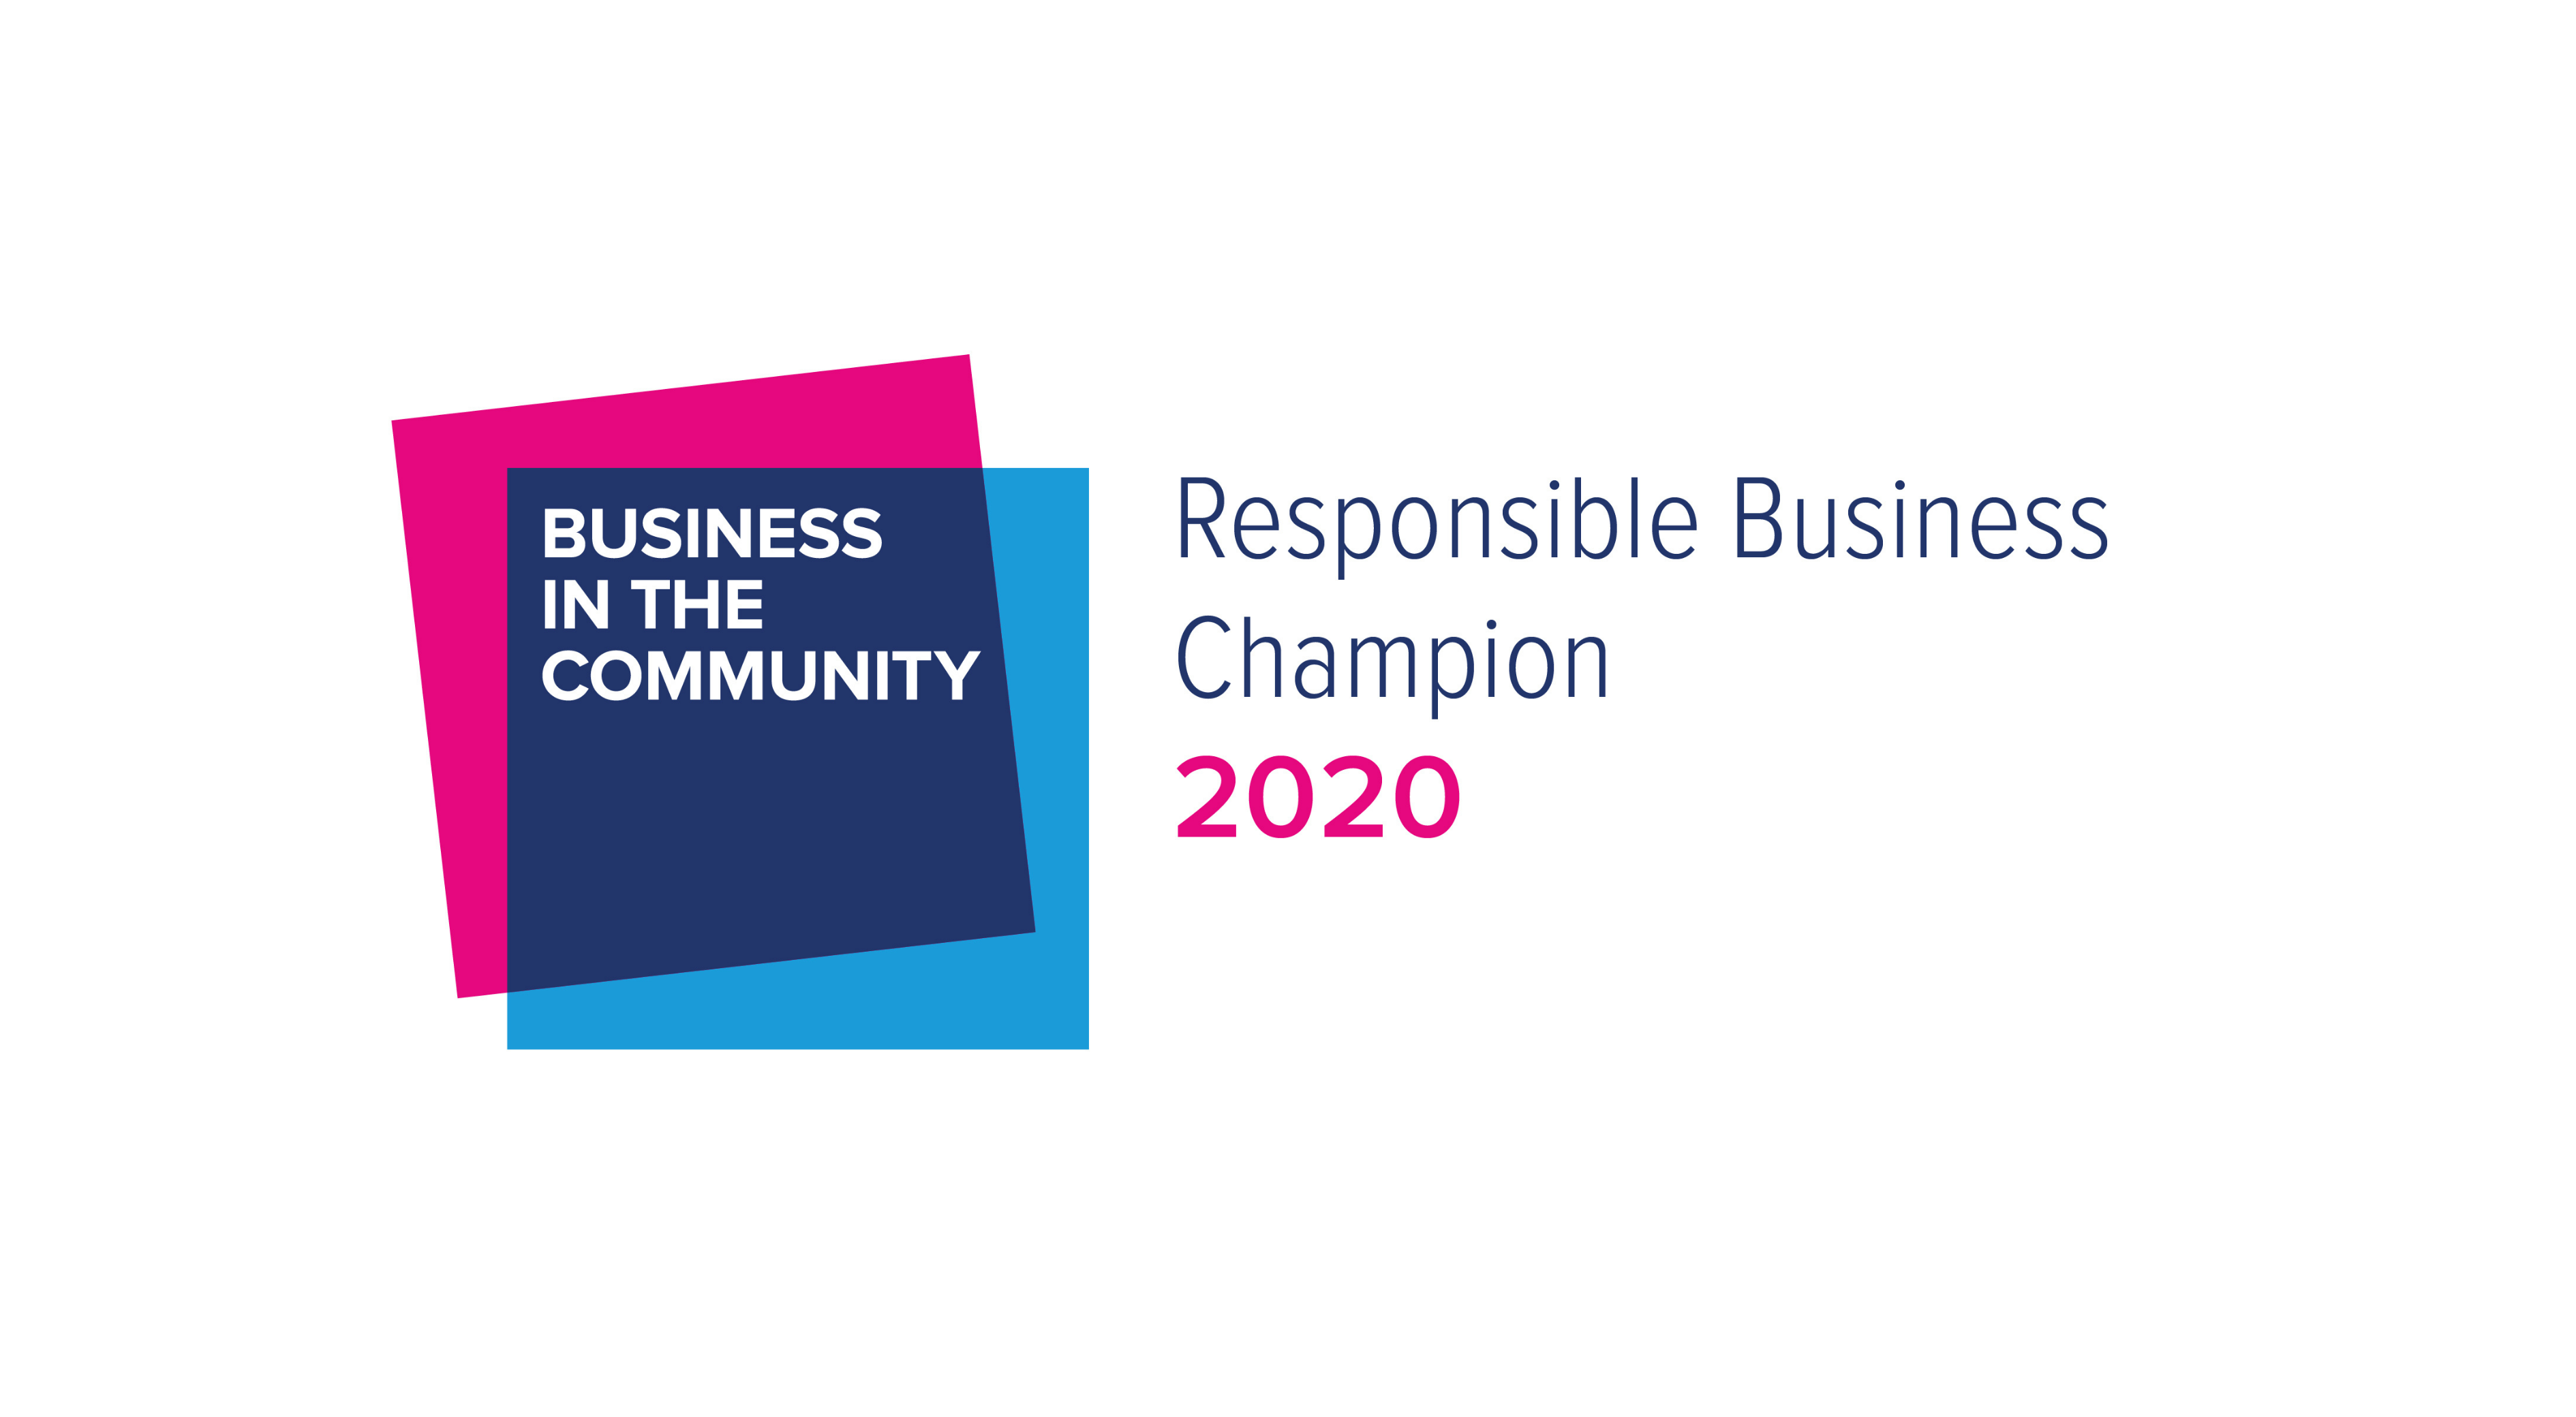 Enterprise named BITC Race Equality Responsible Business Champion